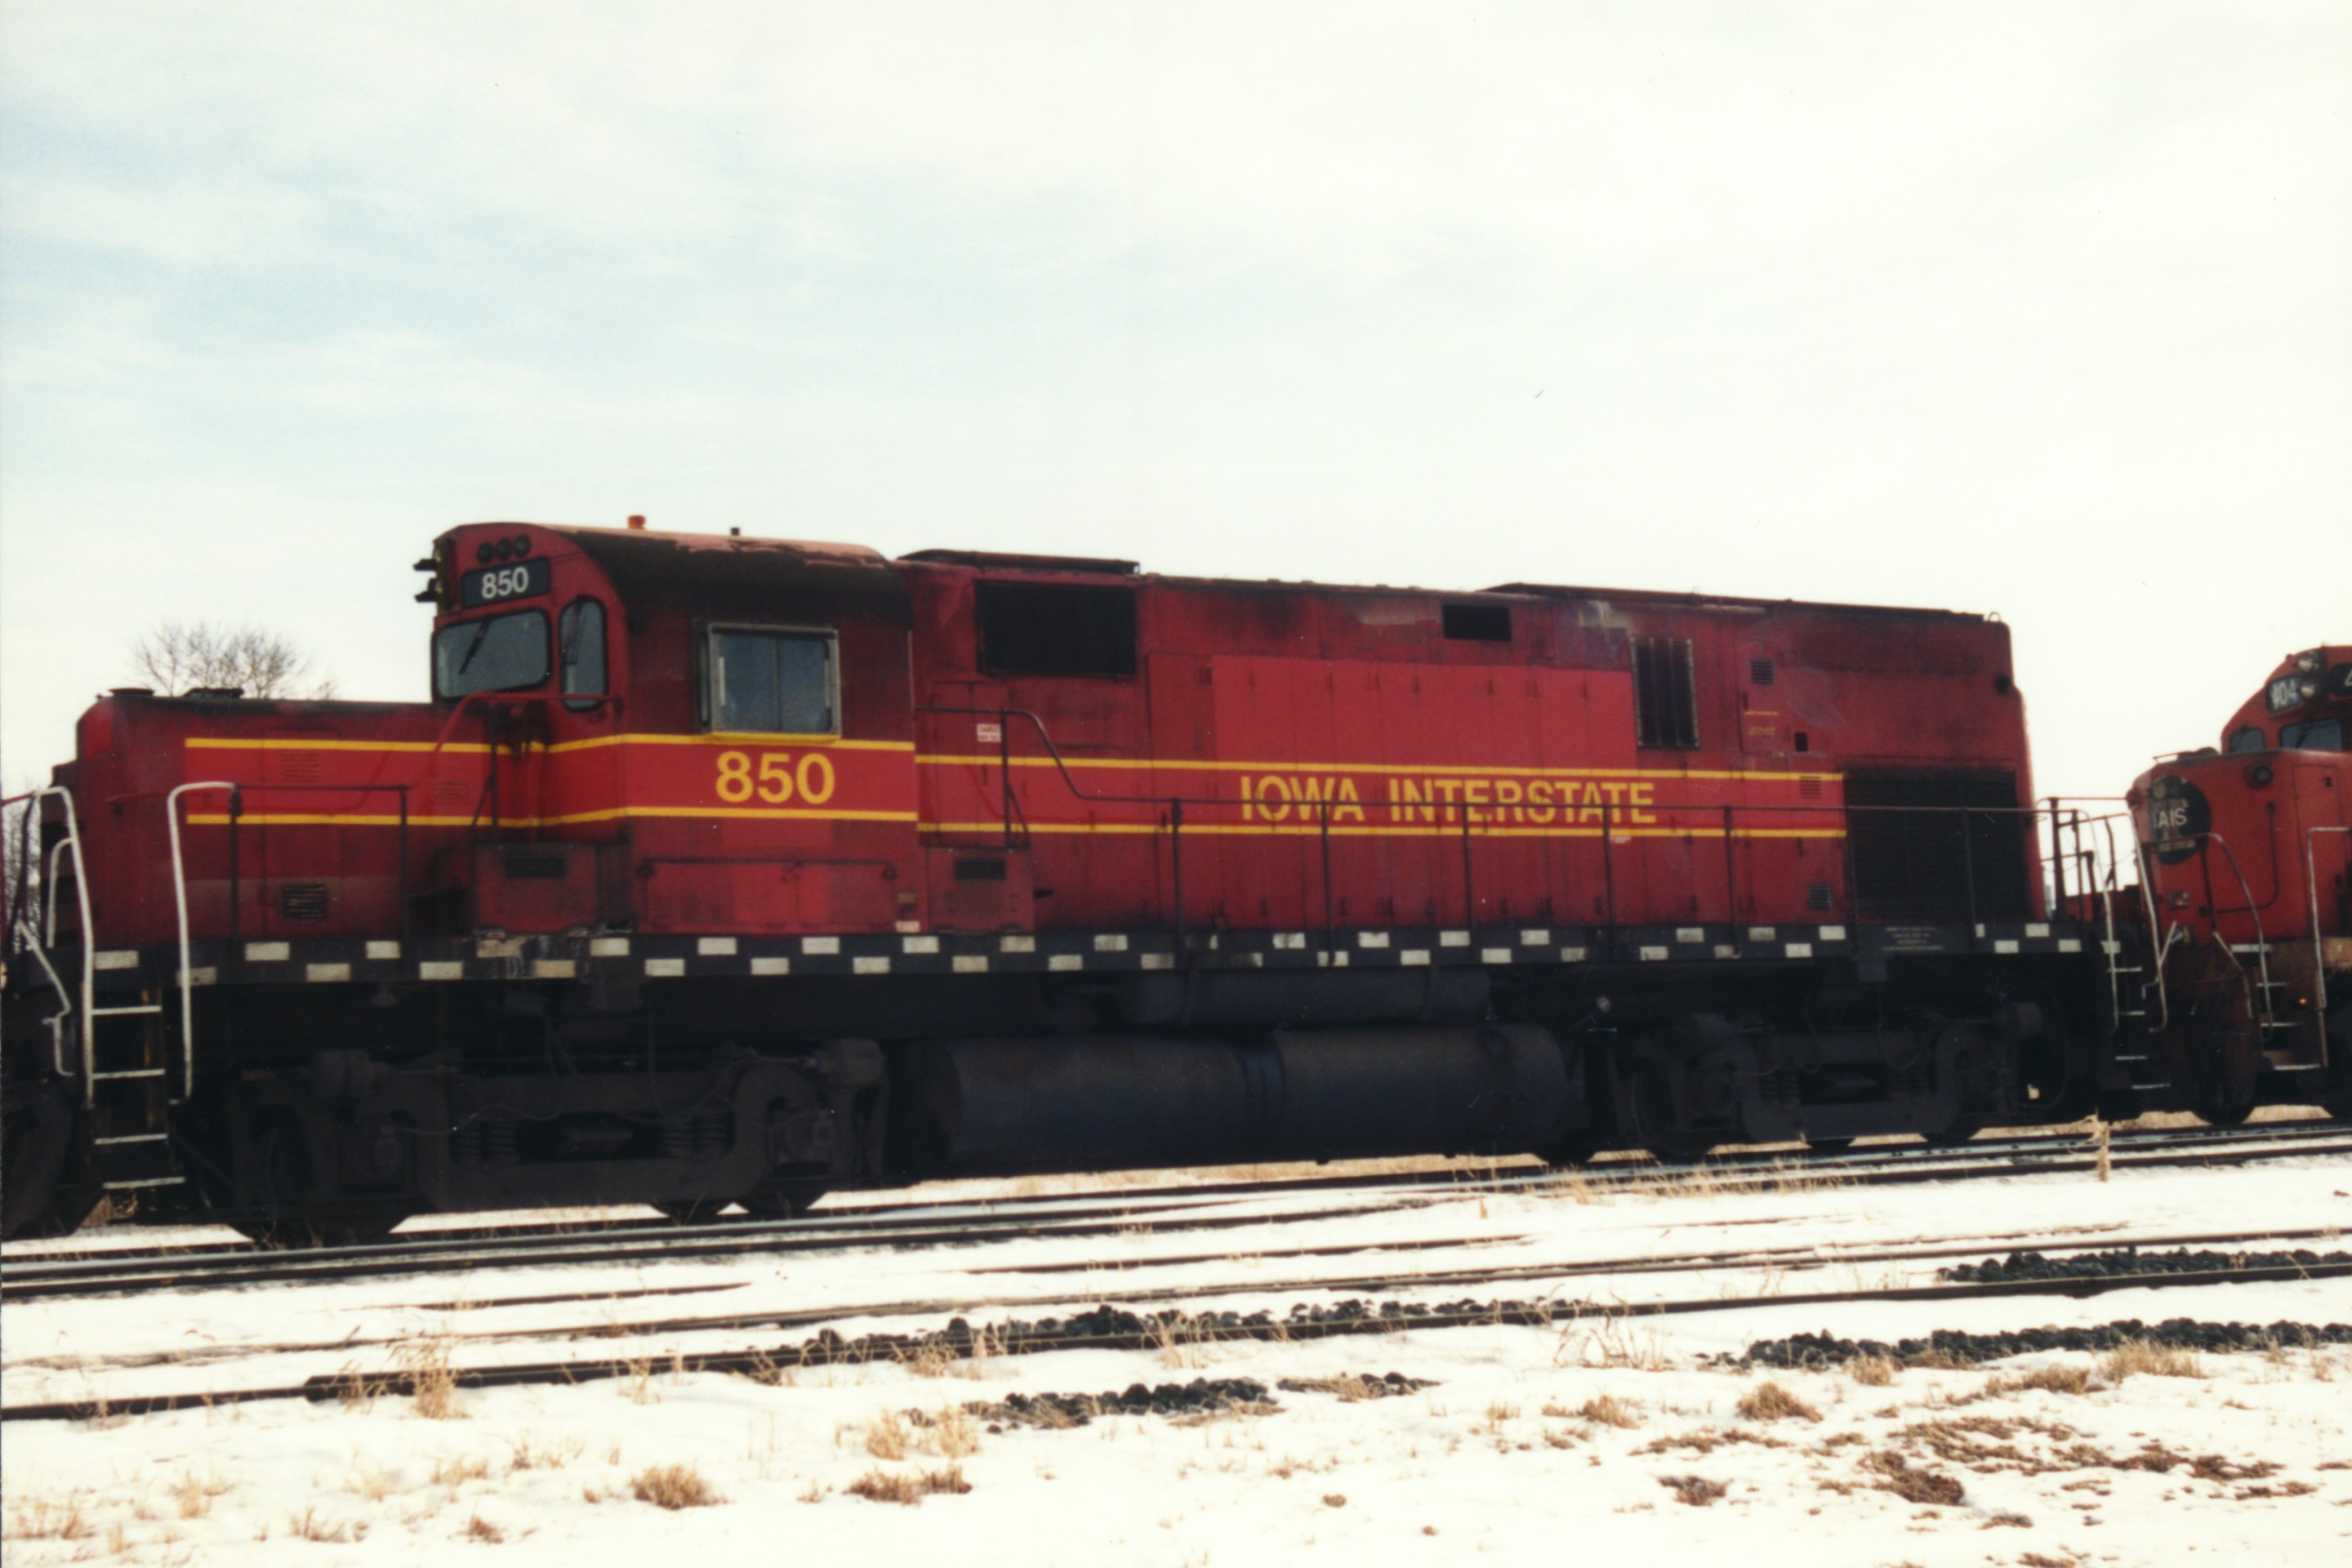 IAIS 850 at Altoona, IA on 14-Feb-1994